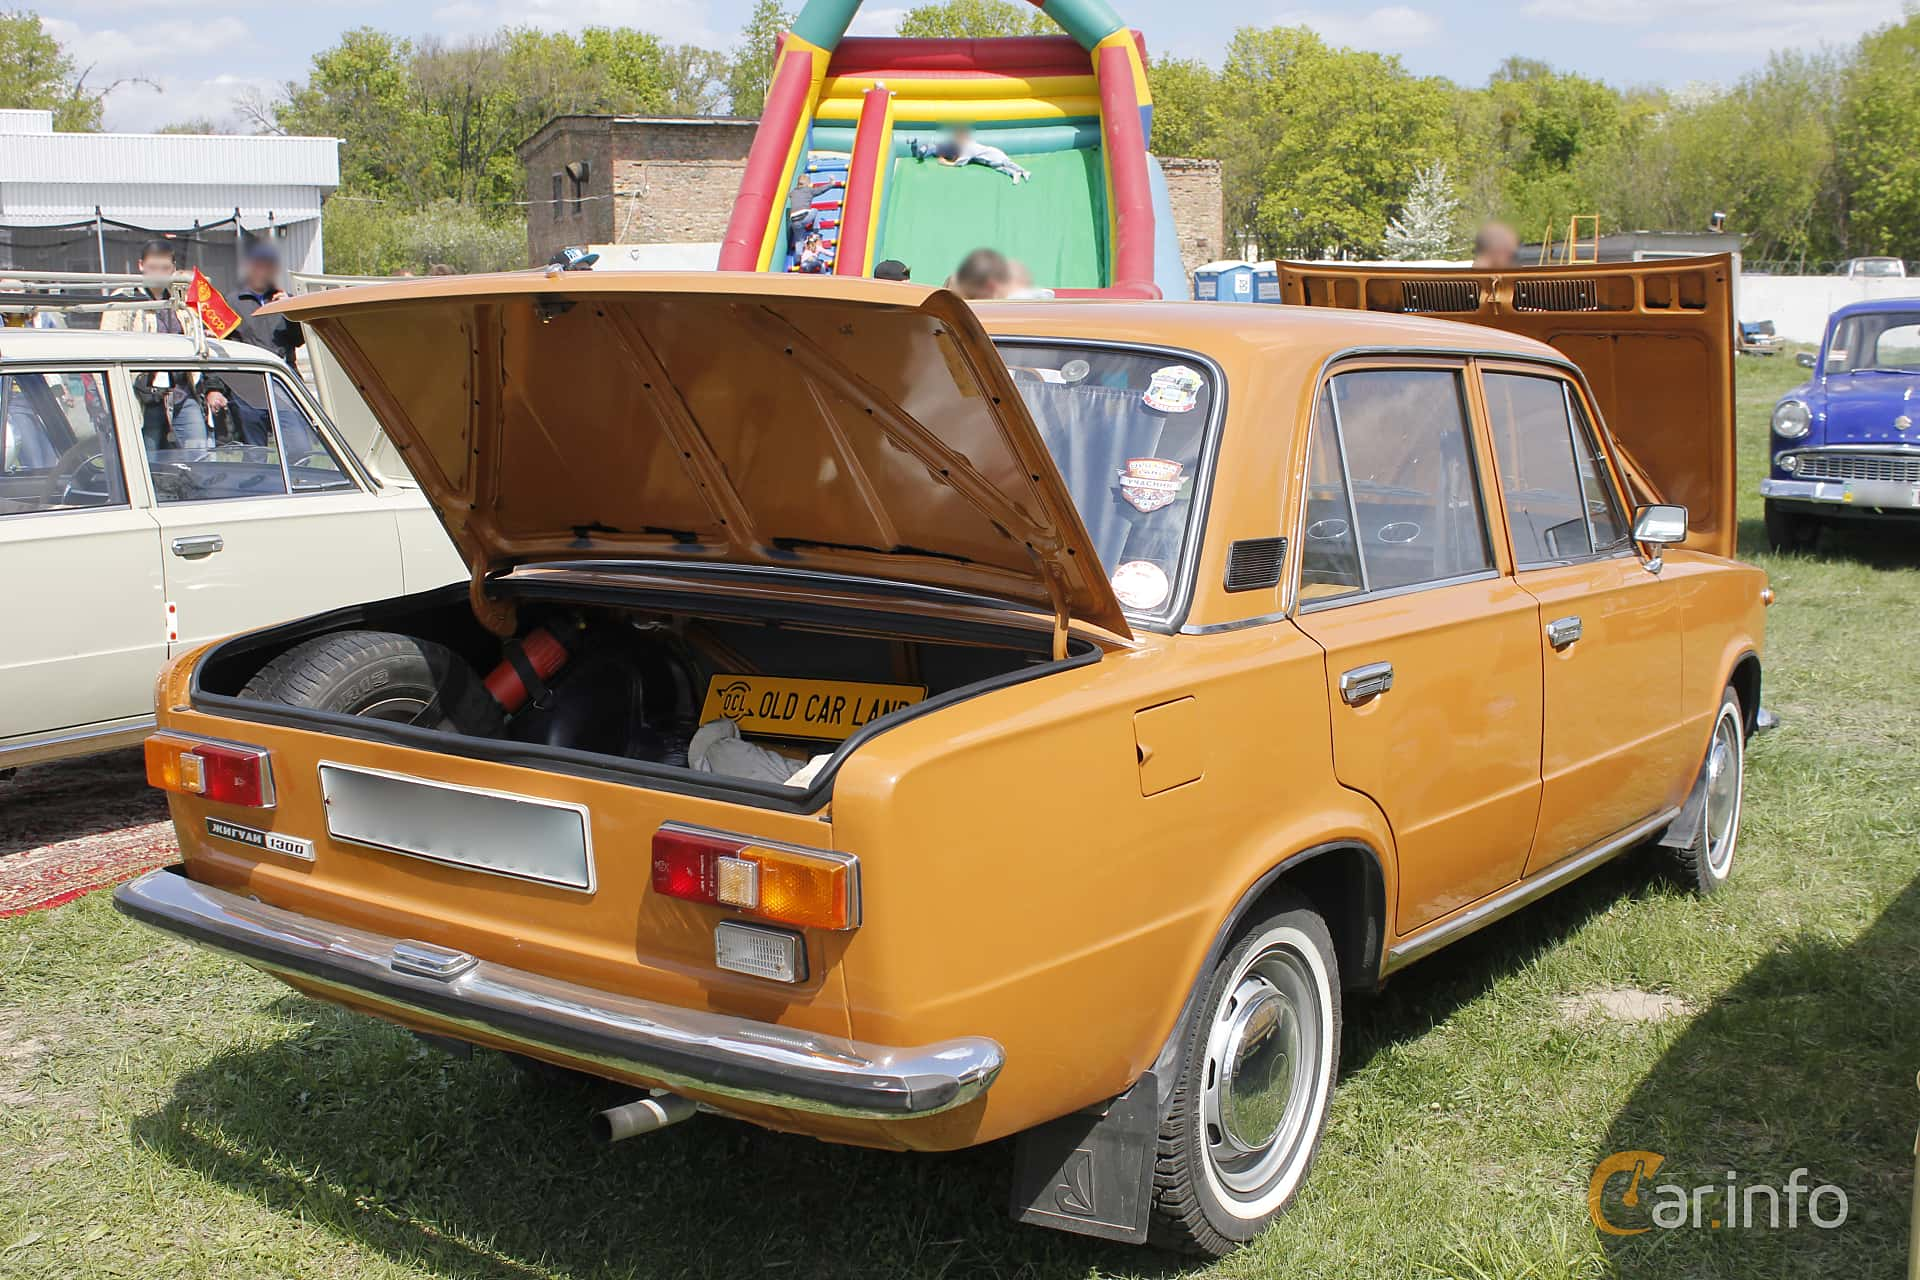 VAZ VAZ-21011 1.3 Manual, 68hp, 1978 at Old Car Land no.1 2018